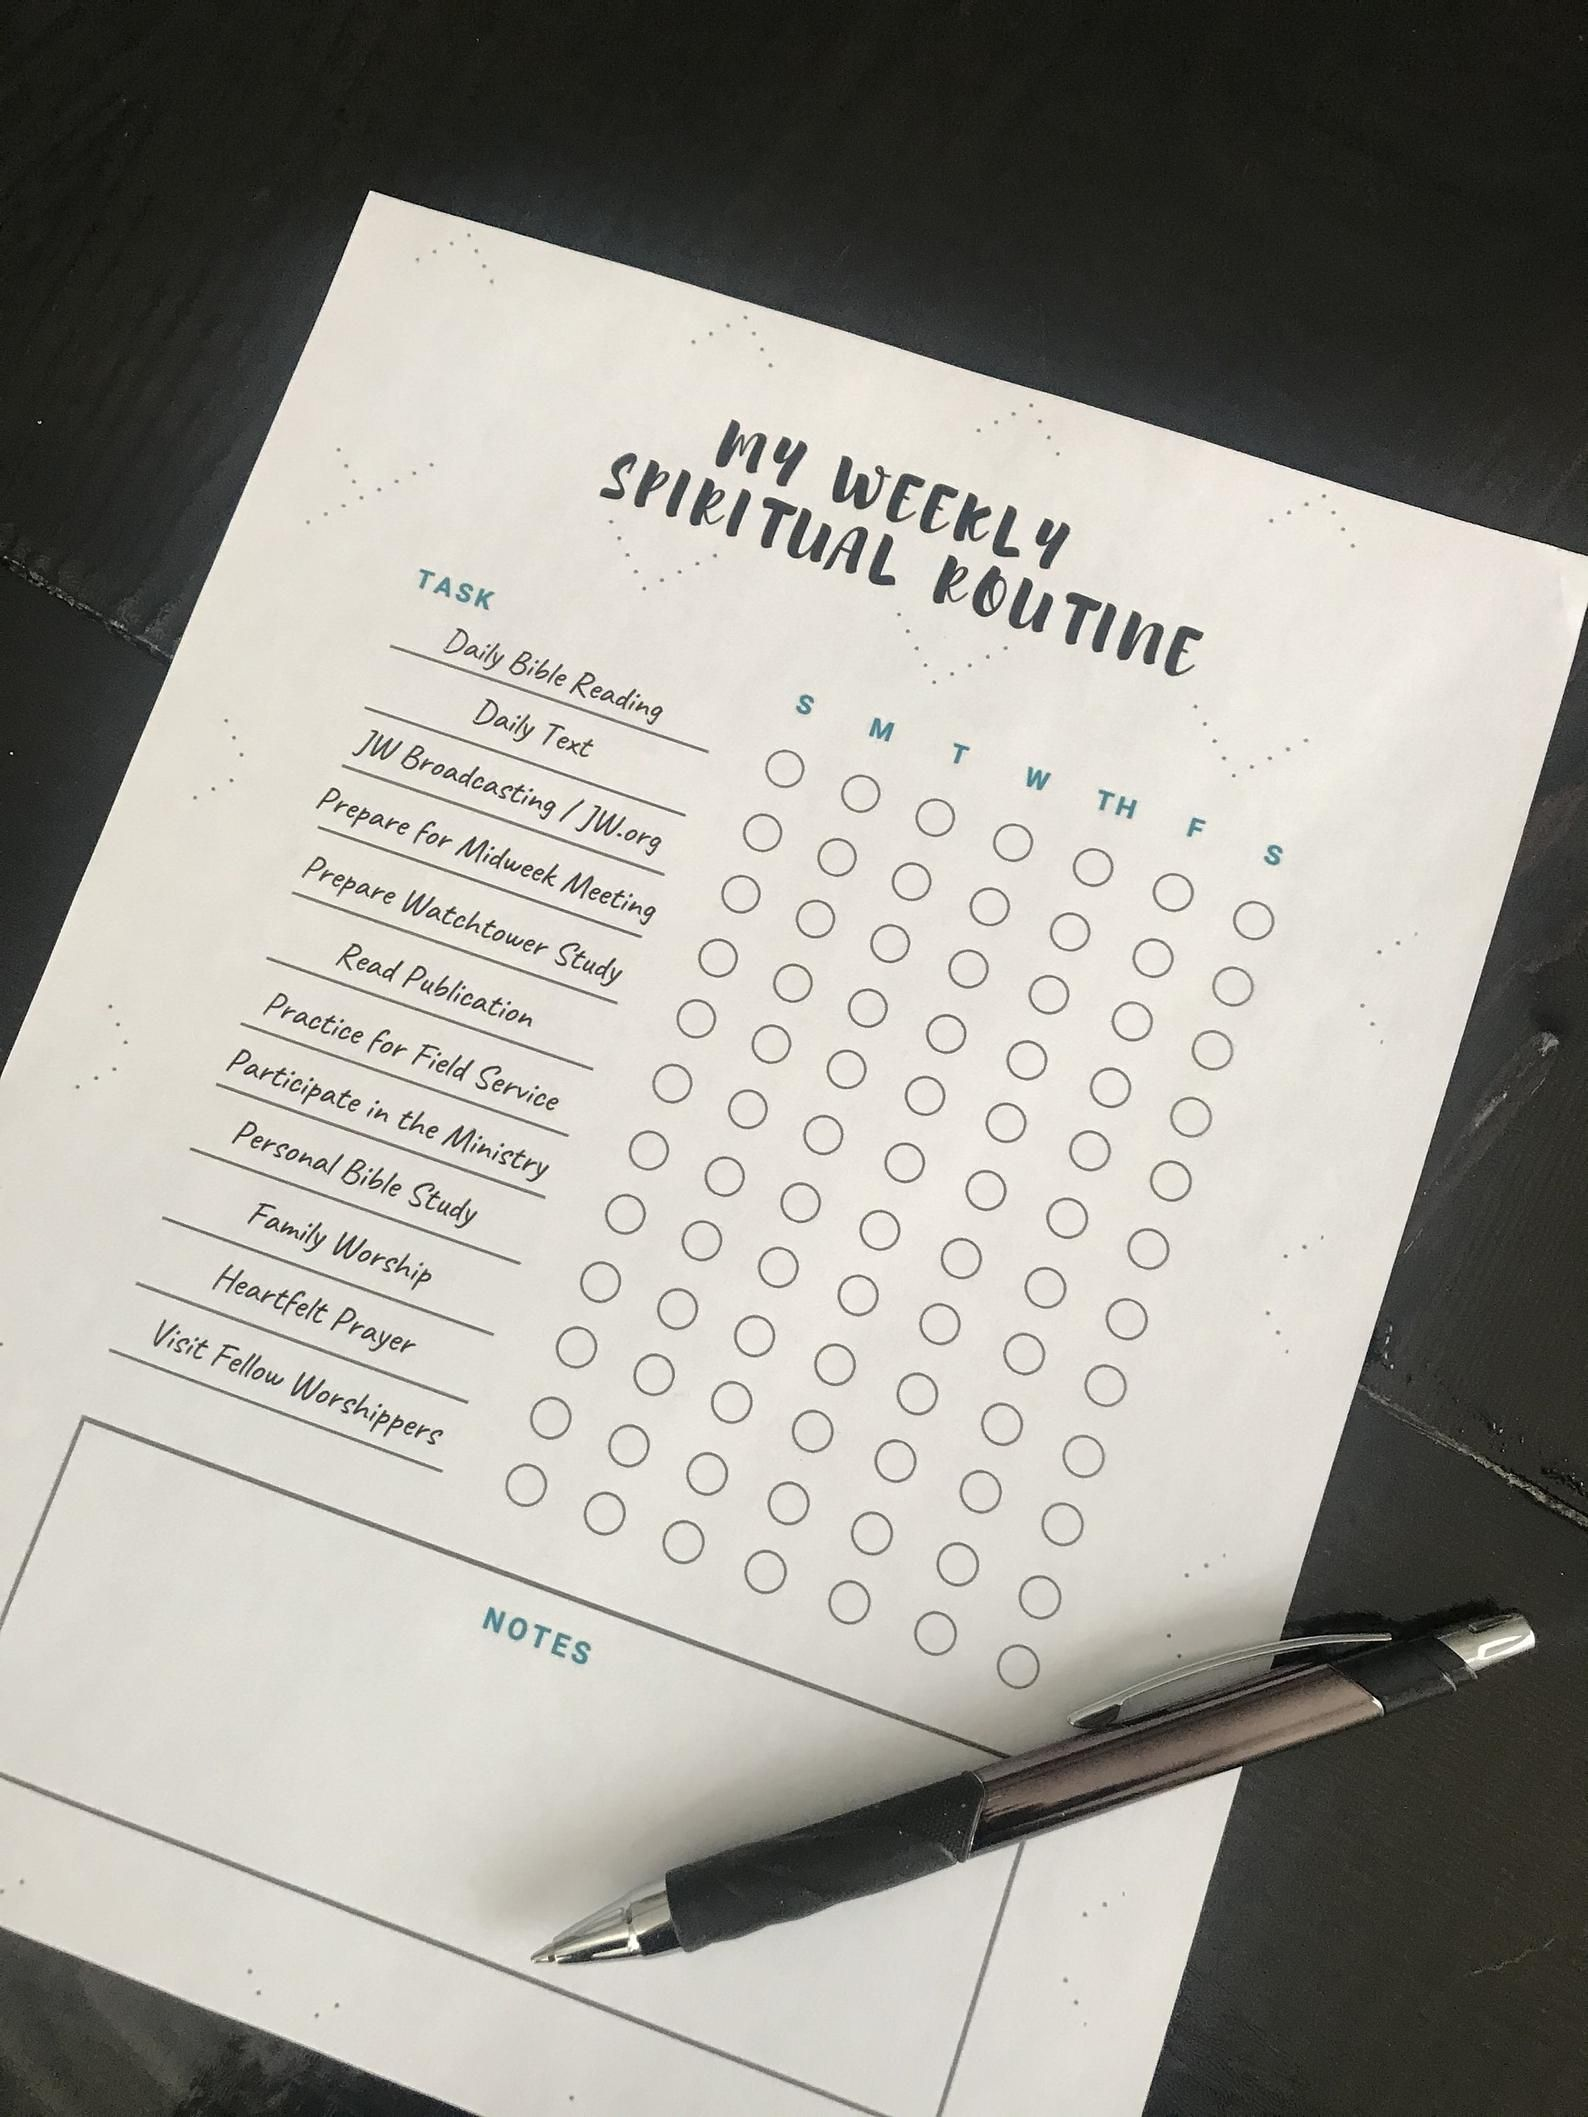 Jw Weekly Spiritual Routine Checklist Worksheet Jehovah S